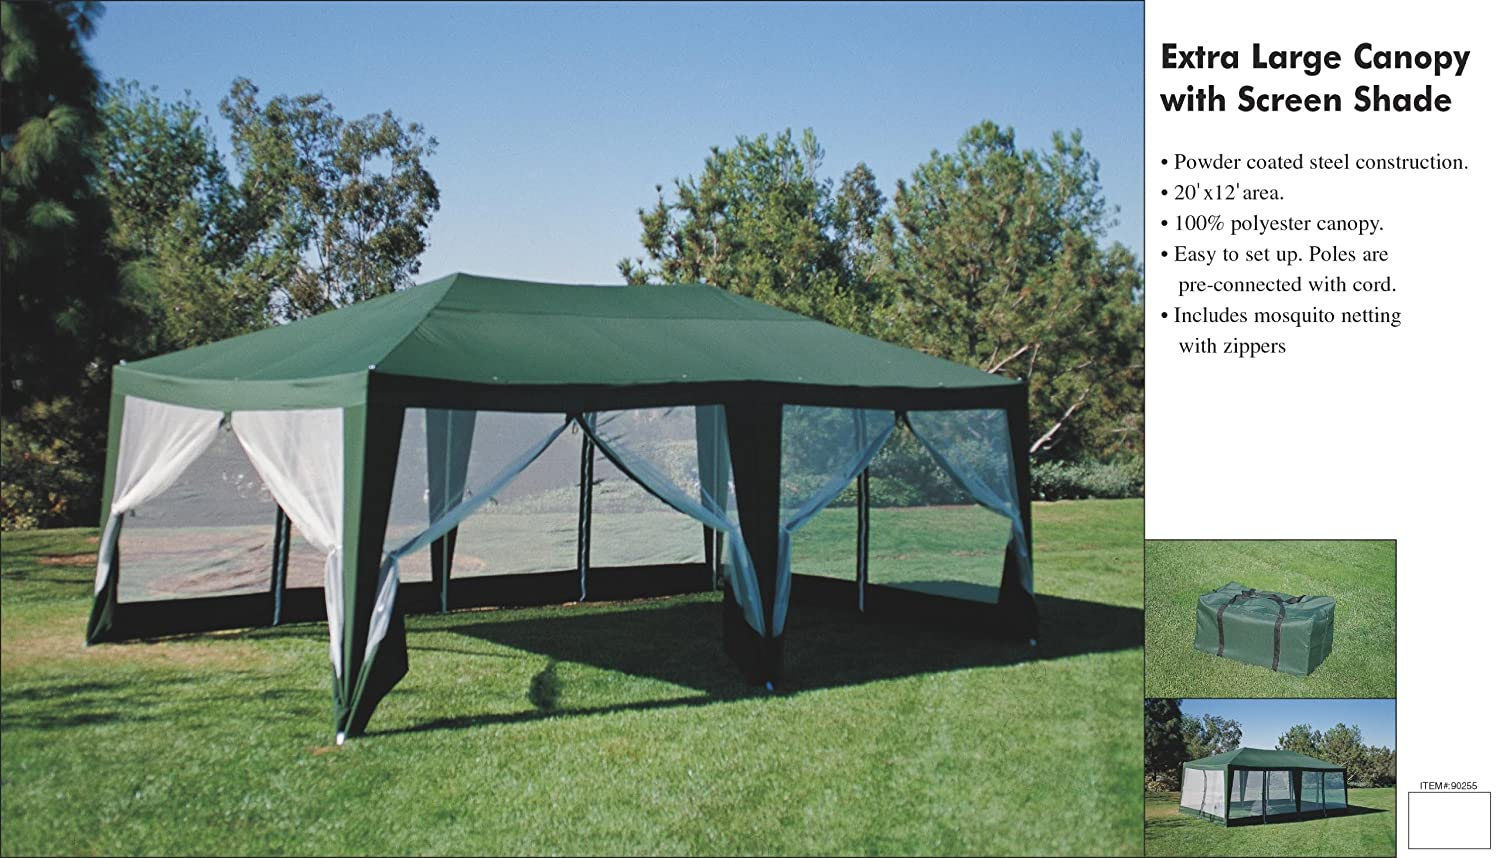 Amazon.com Deluxe Party Tent Sun Shelter 20ftx12ft Green Sports u0026 Outdoors : 20 tent - memphite.com